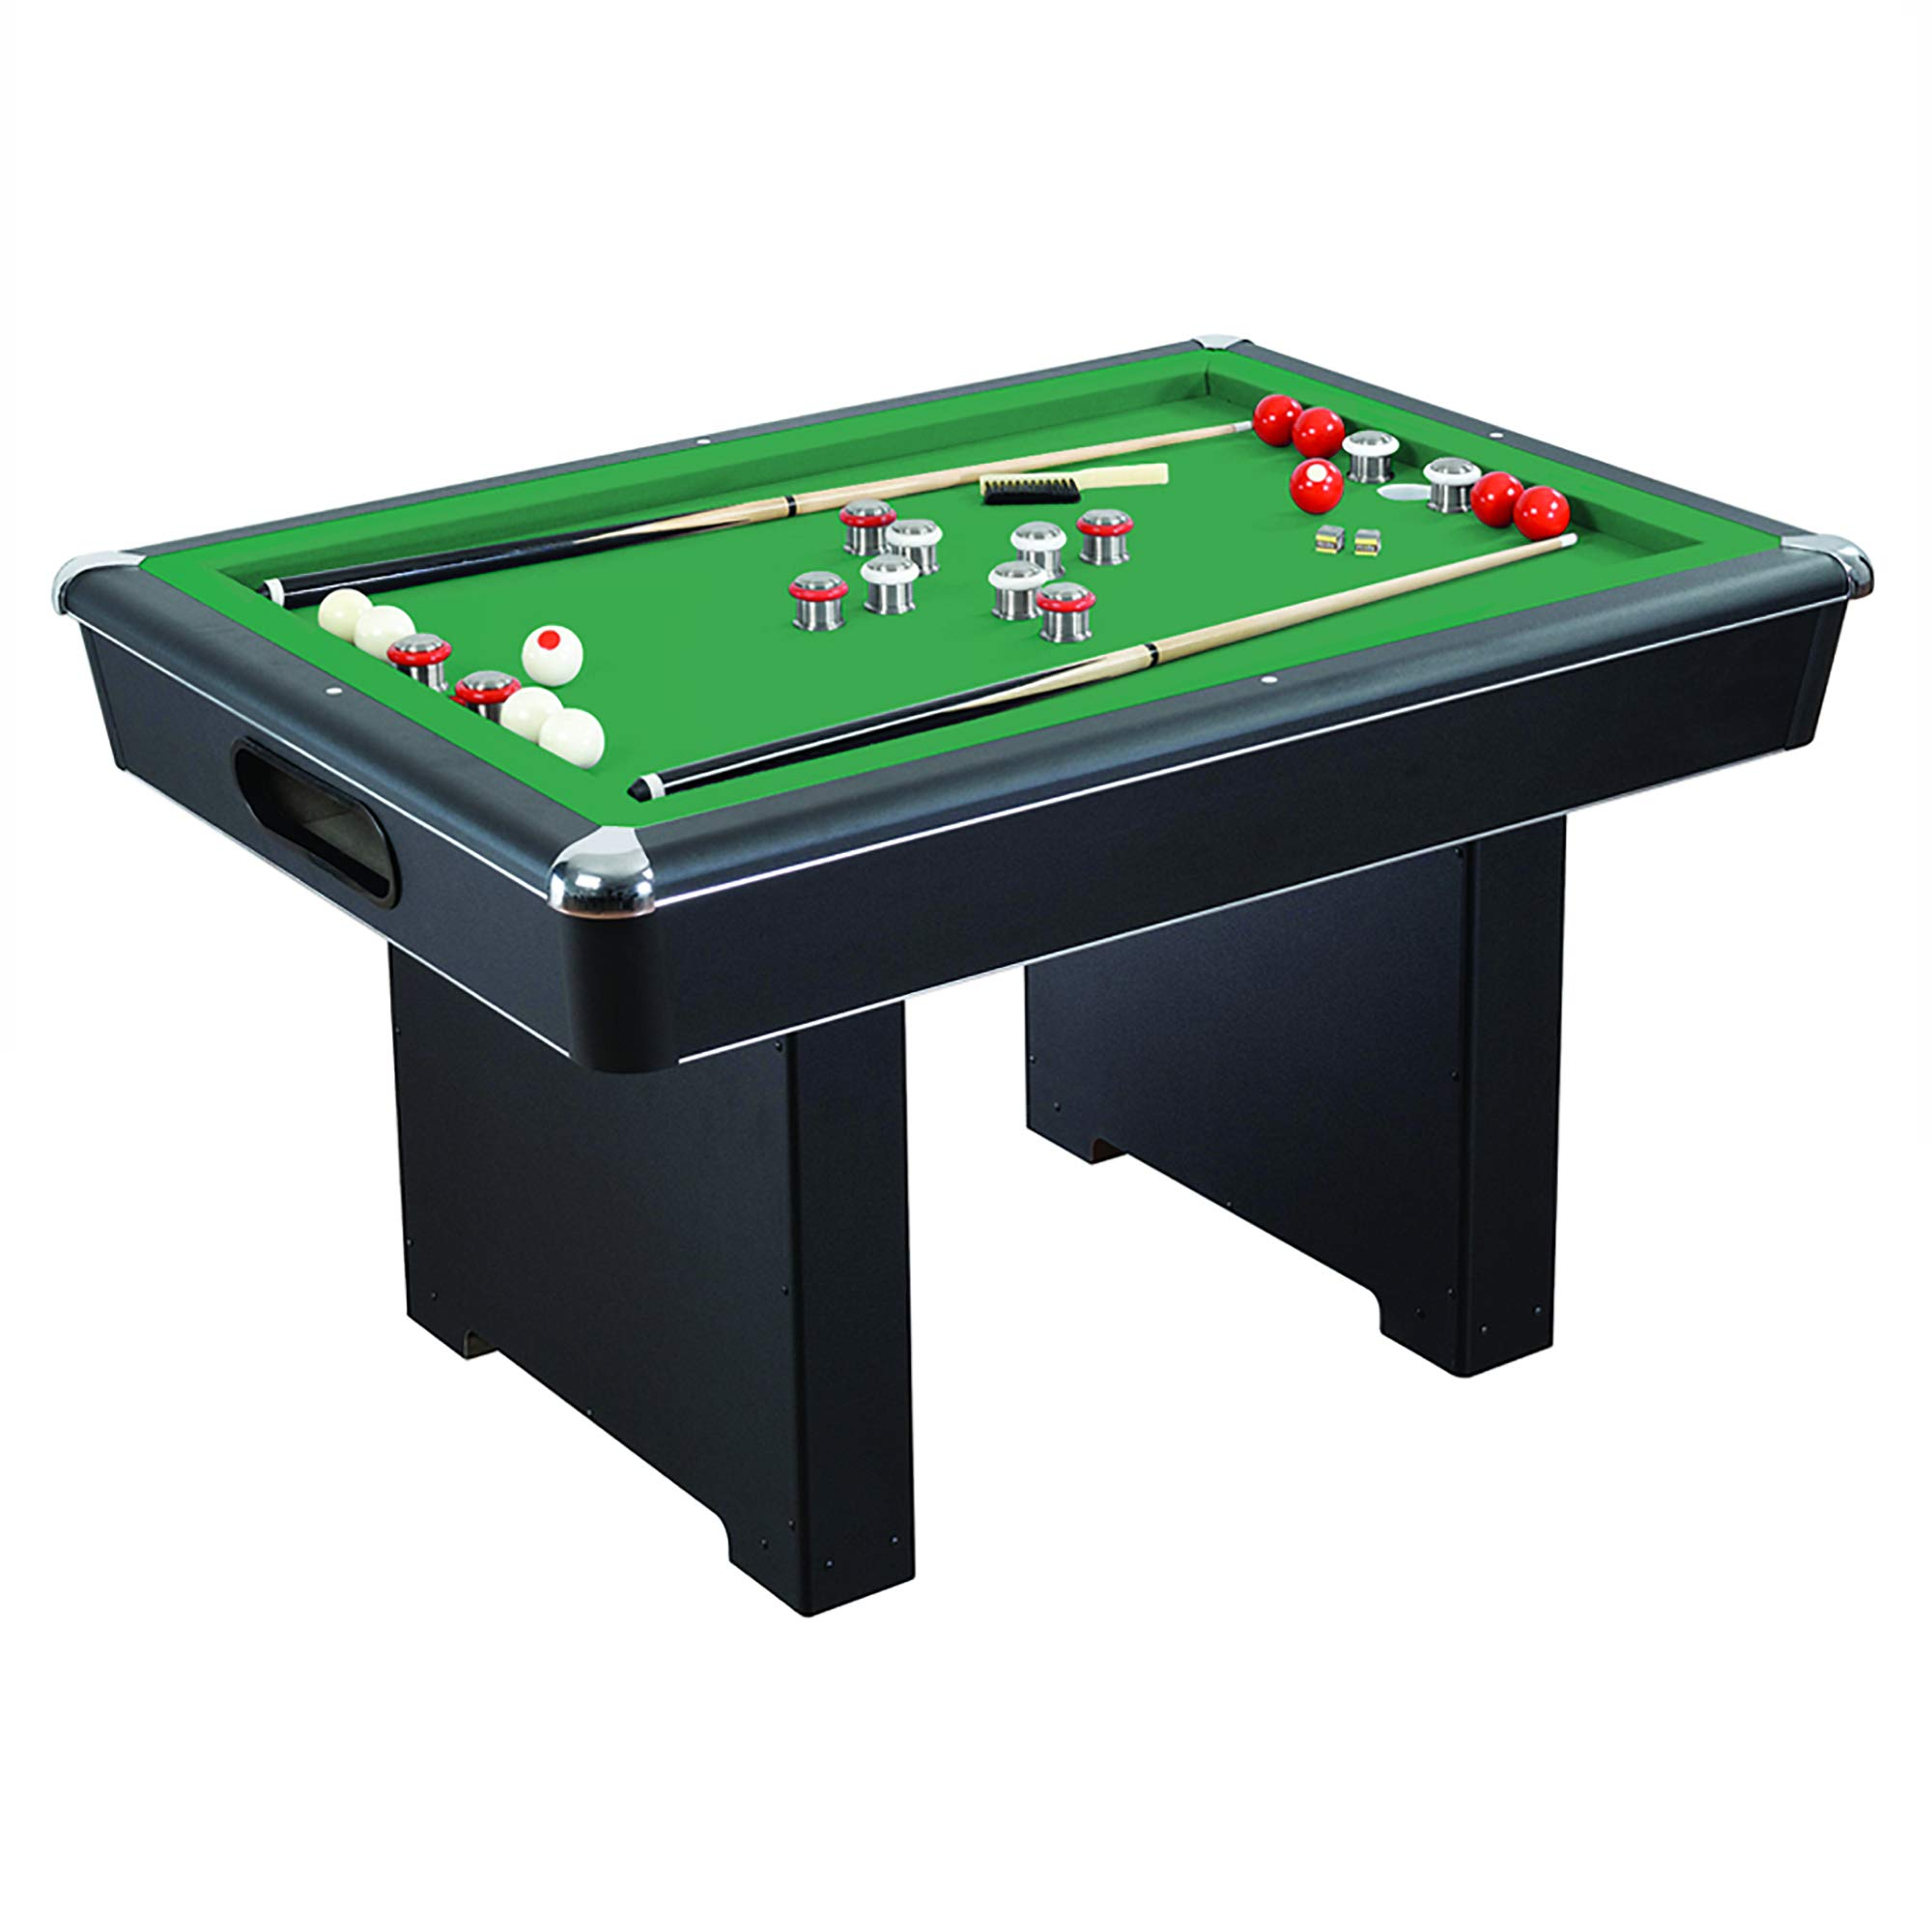 Hathaway Renegade 54-in Slate Bumper Pool Table for Family Game Rooms with Green Felt, 48-in Cues, Balls, Brush and Chalk by Hathaway